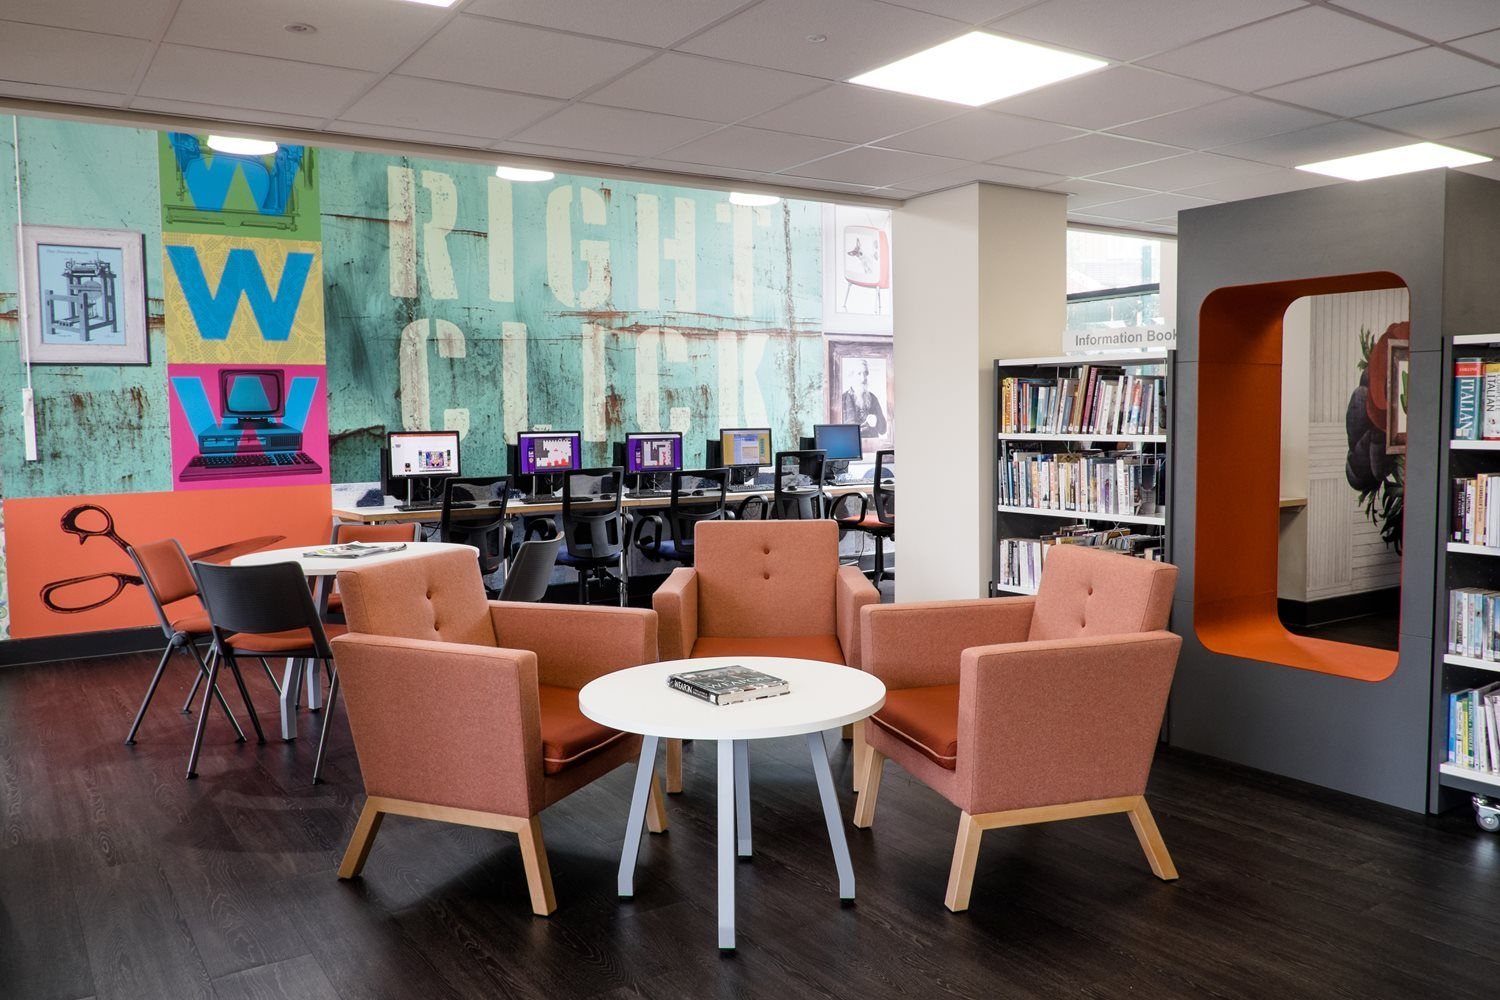 Find inspiration in our library gallery thedesignconcept